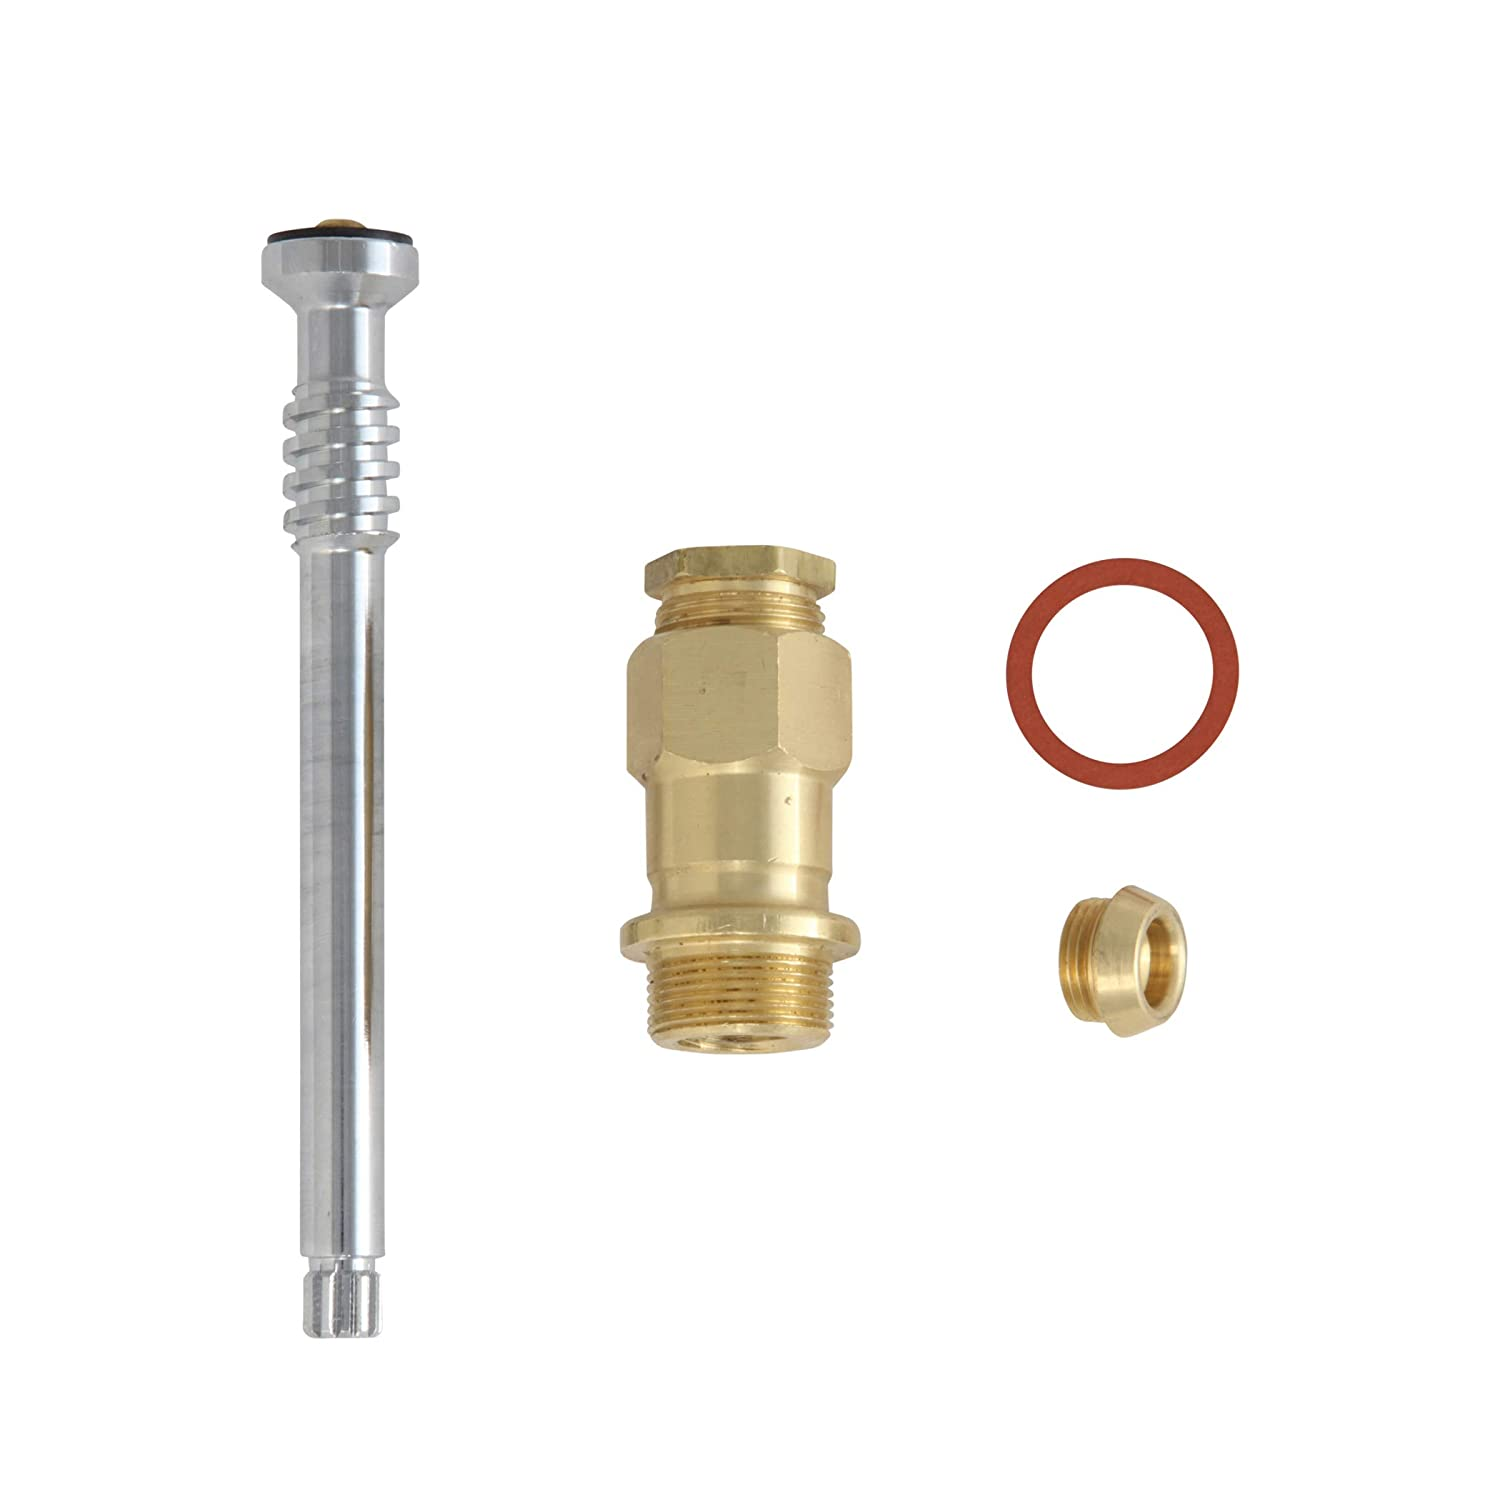 11 in L for Use with Arrow Model H//C Head Faucets Danco 17134B 11I-6 Stem Antique Brass Metal